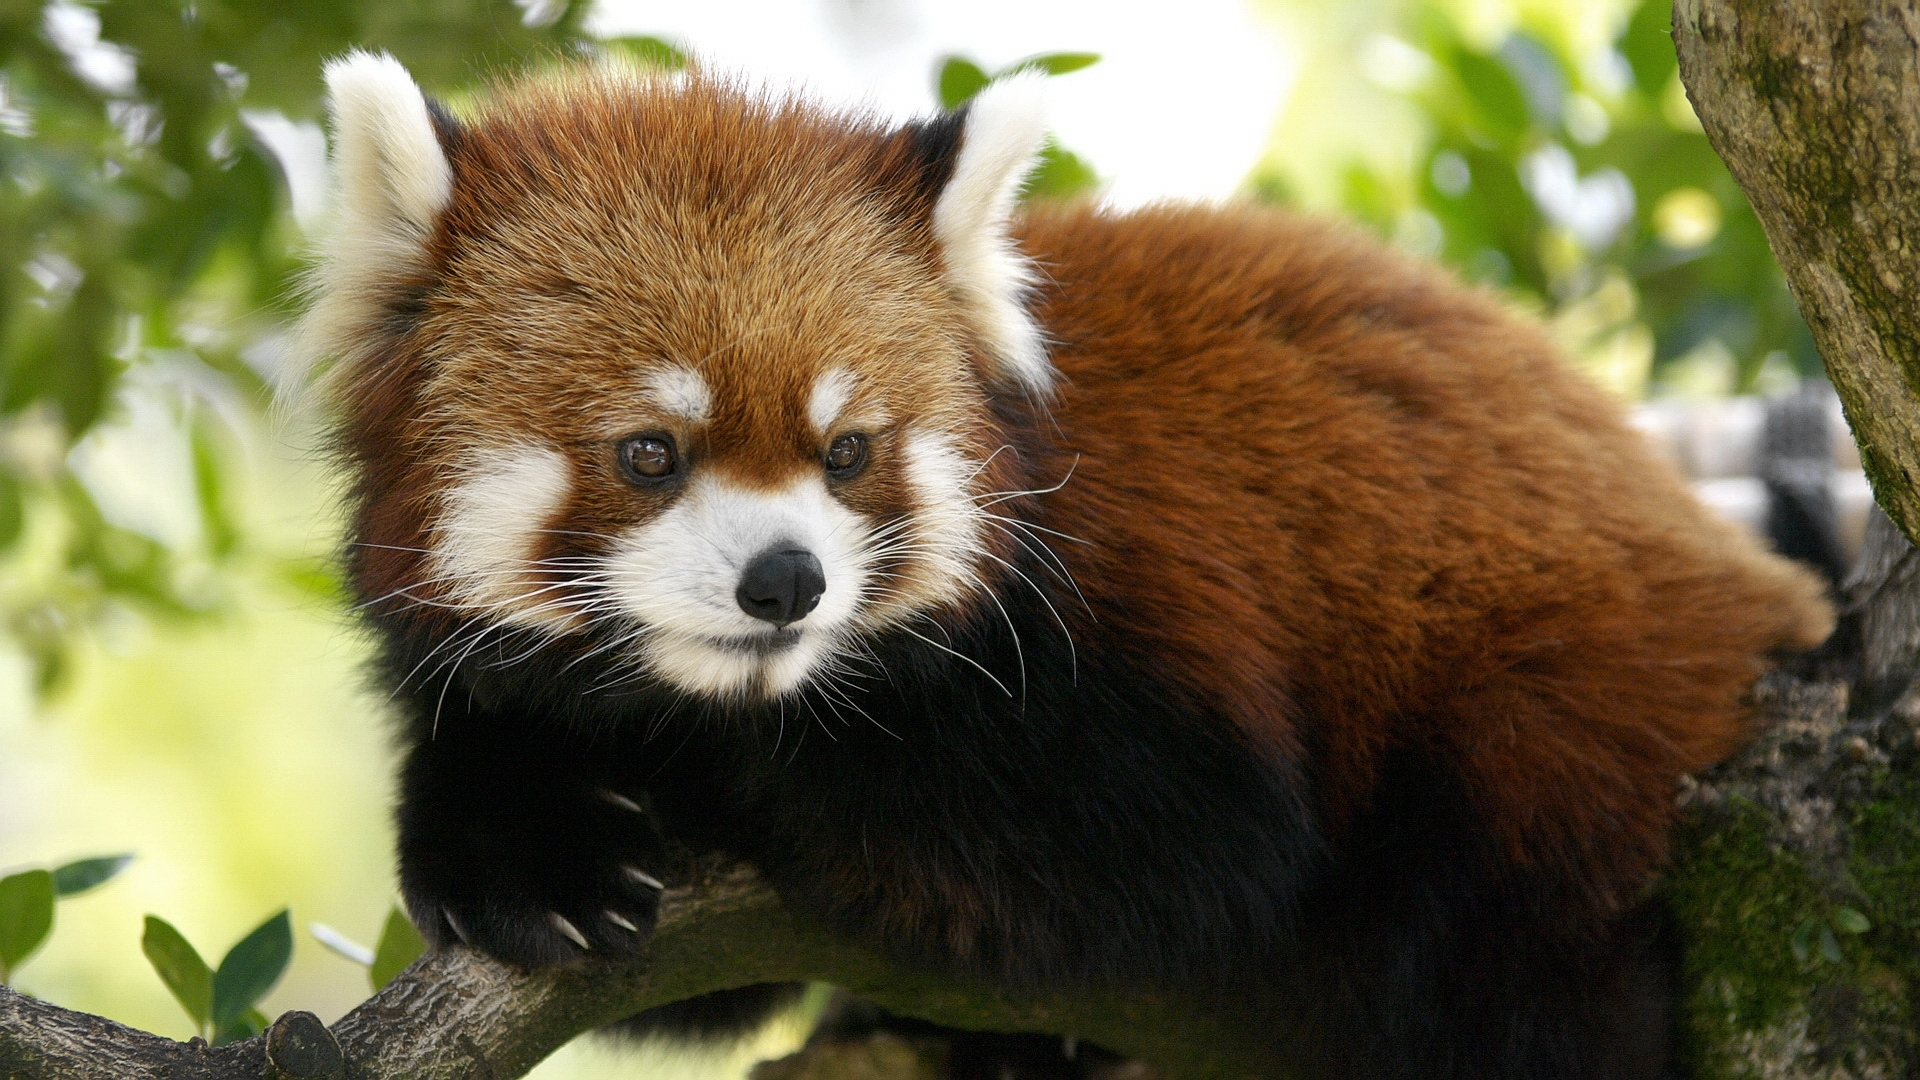 25926 download wallpaper Animals, Pandas screensavers and pictures for free